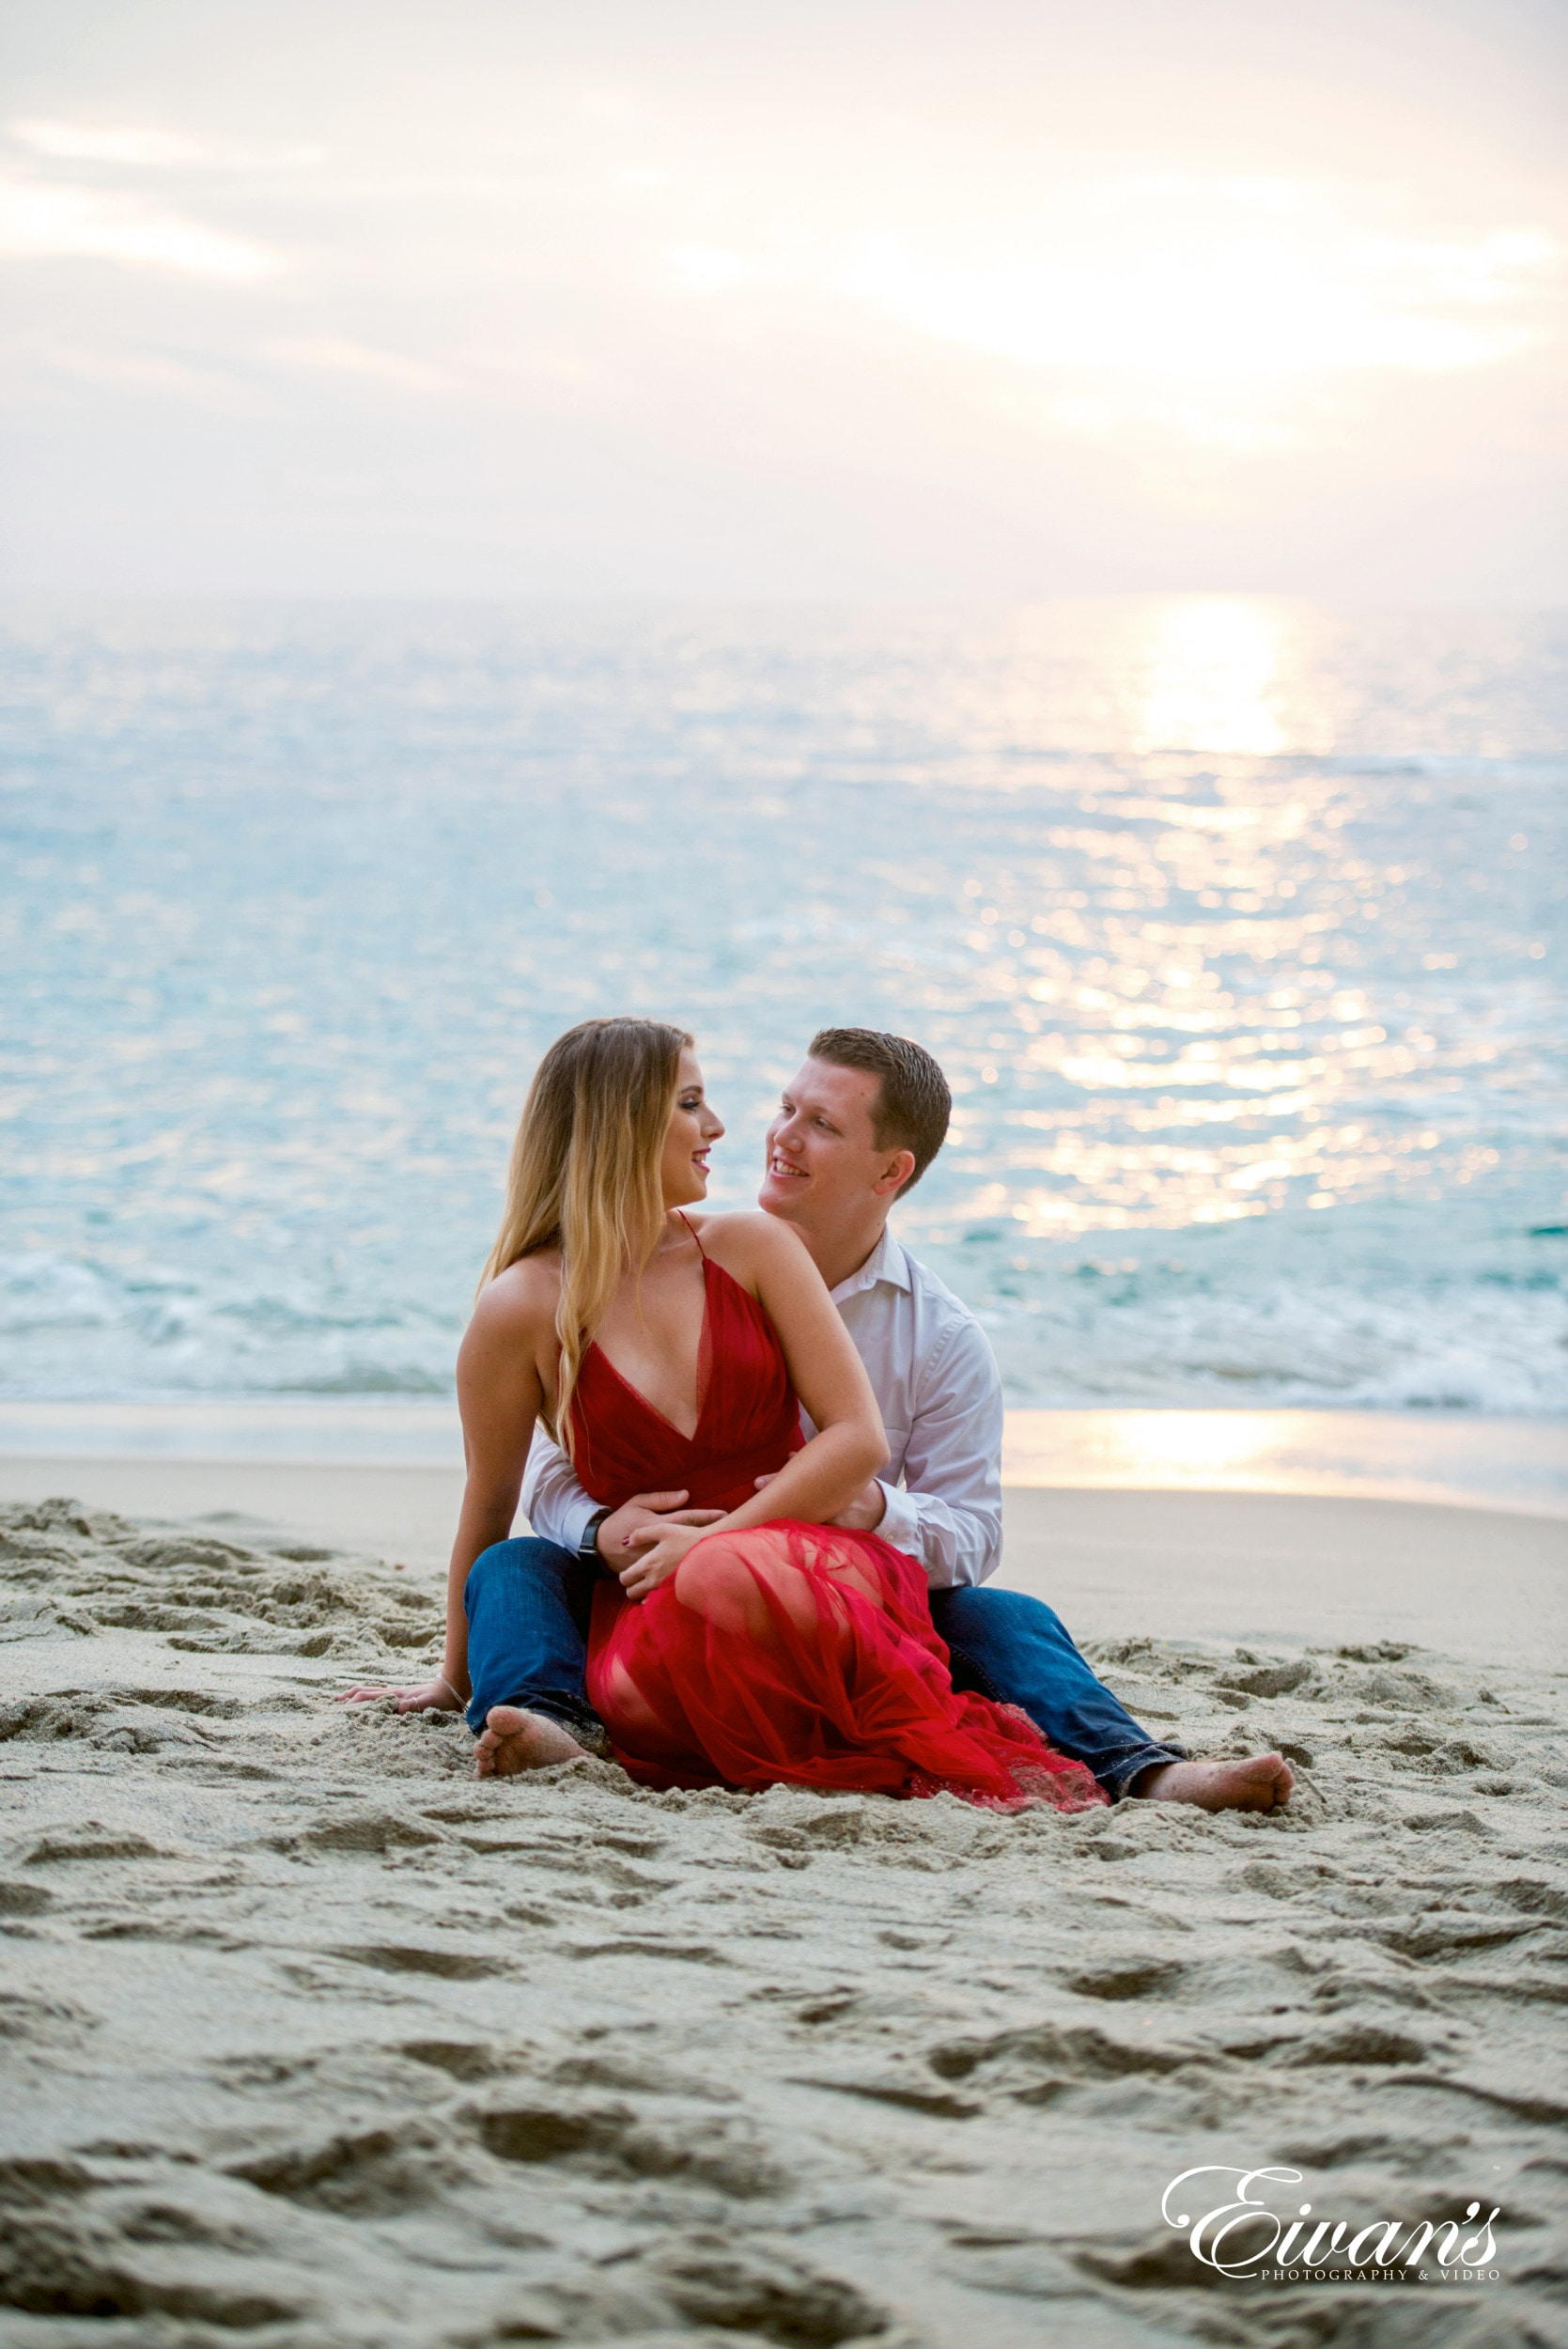 man and woman sitting on beach during daytime